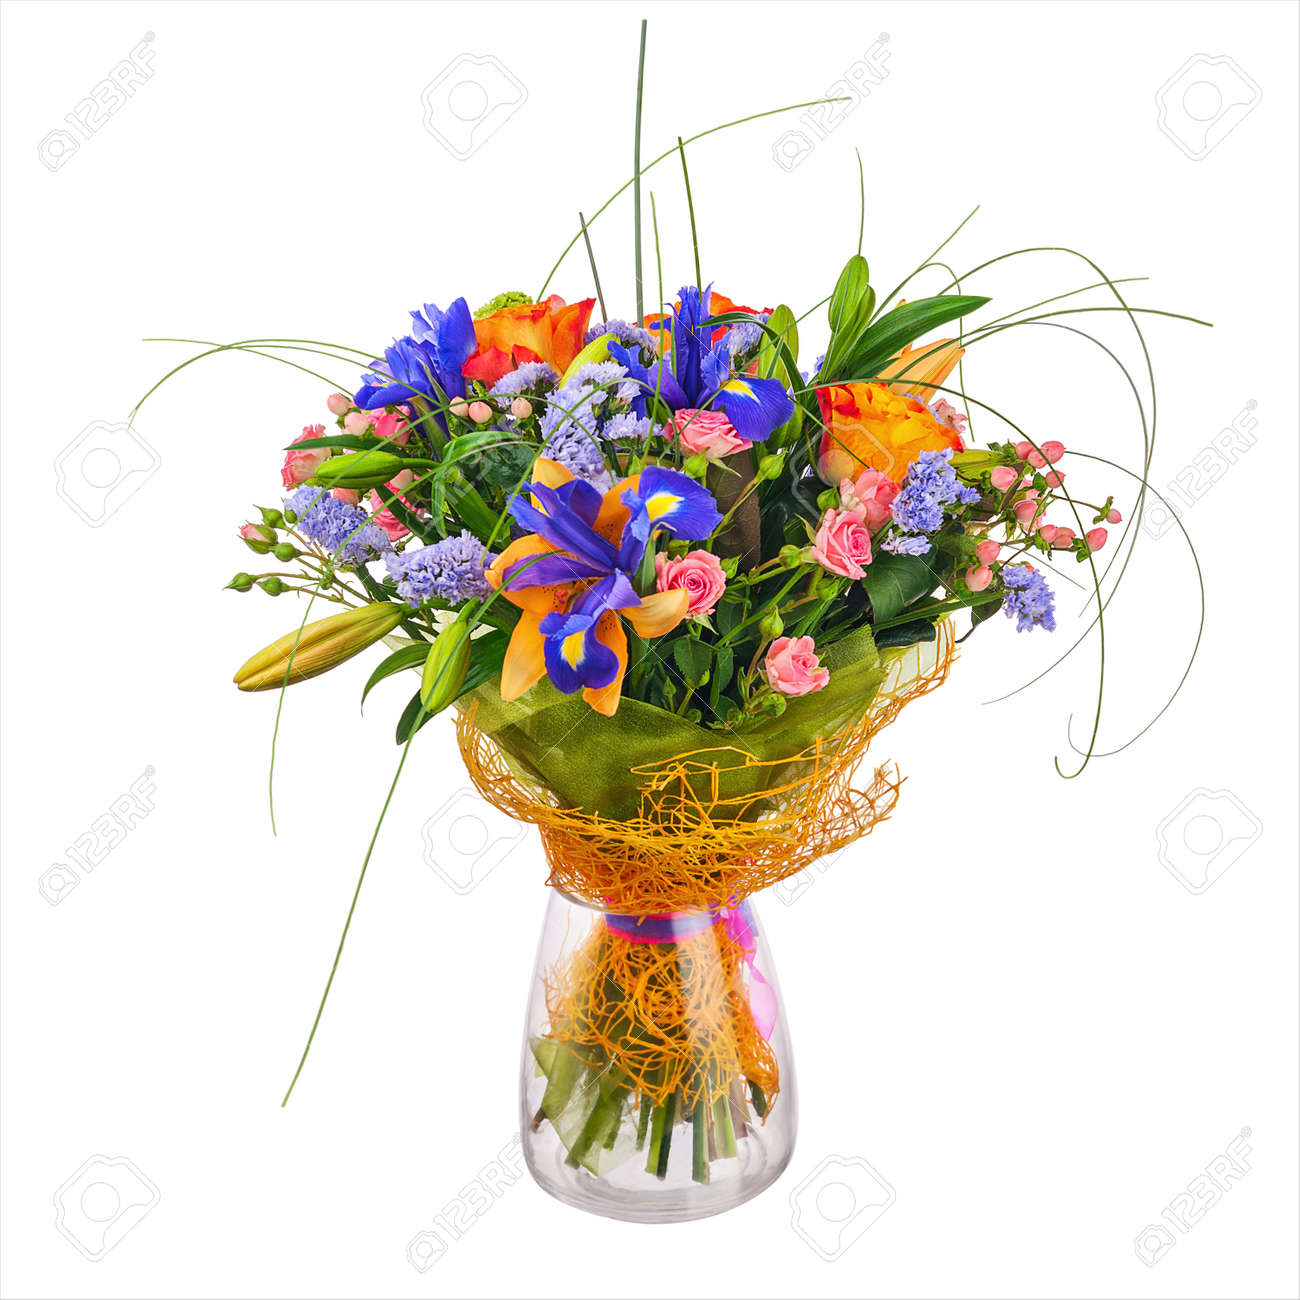 Flower bouquet from roses iris and statice flowers in glass stock flower bouquet from roses iris and statice flowers in glass vase isolated on white background izmirmasajfo